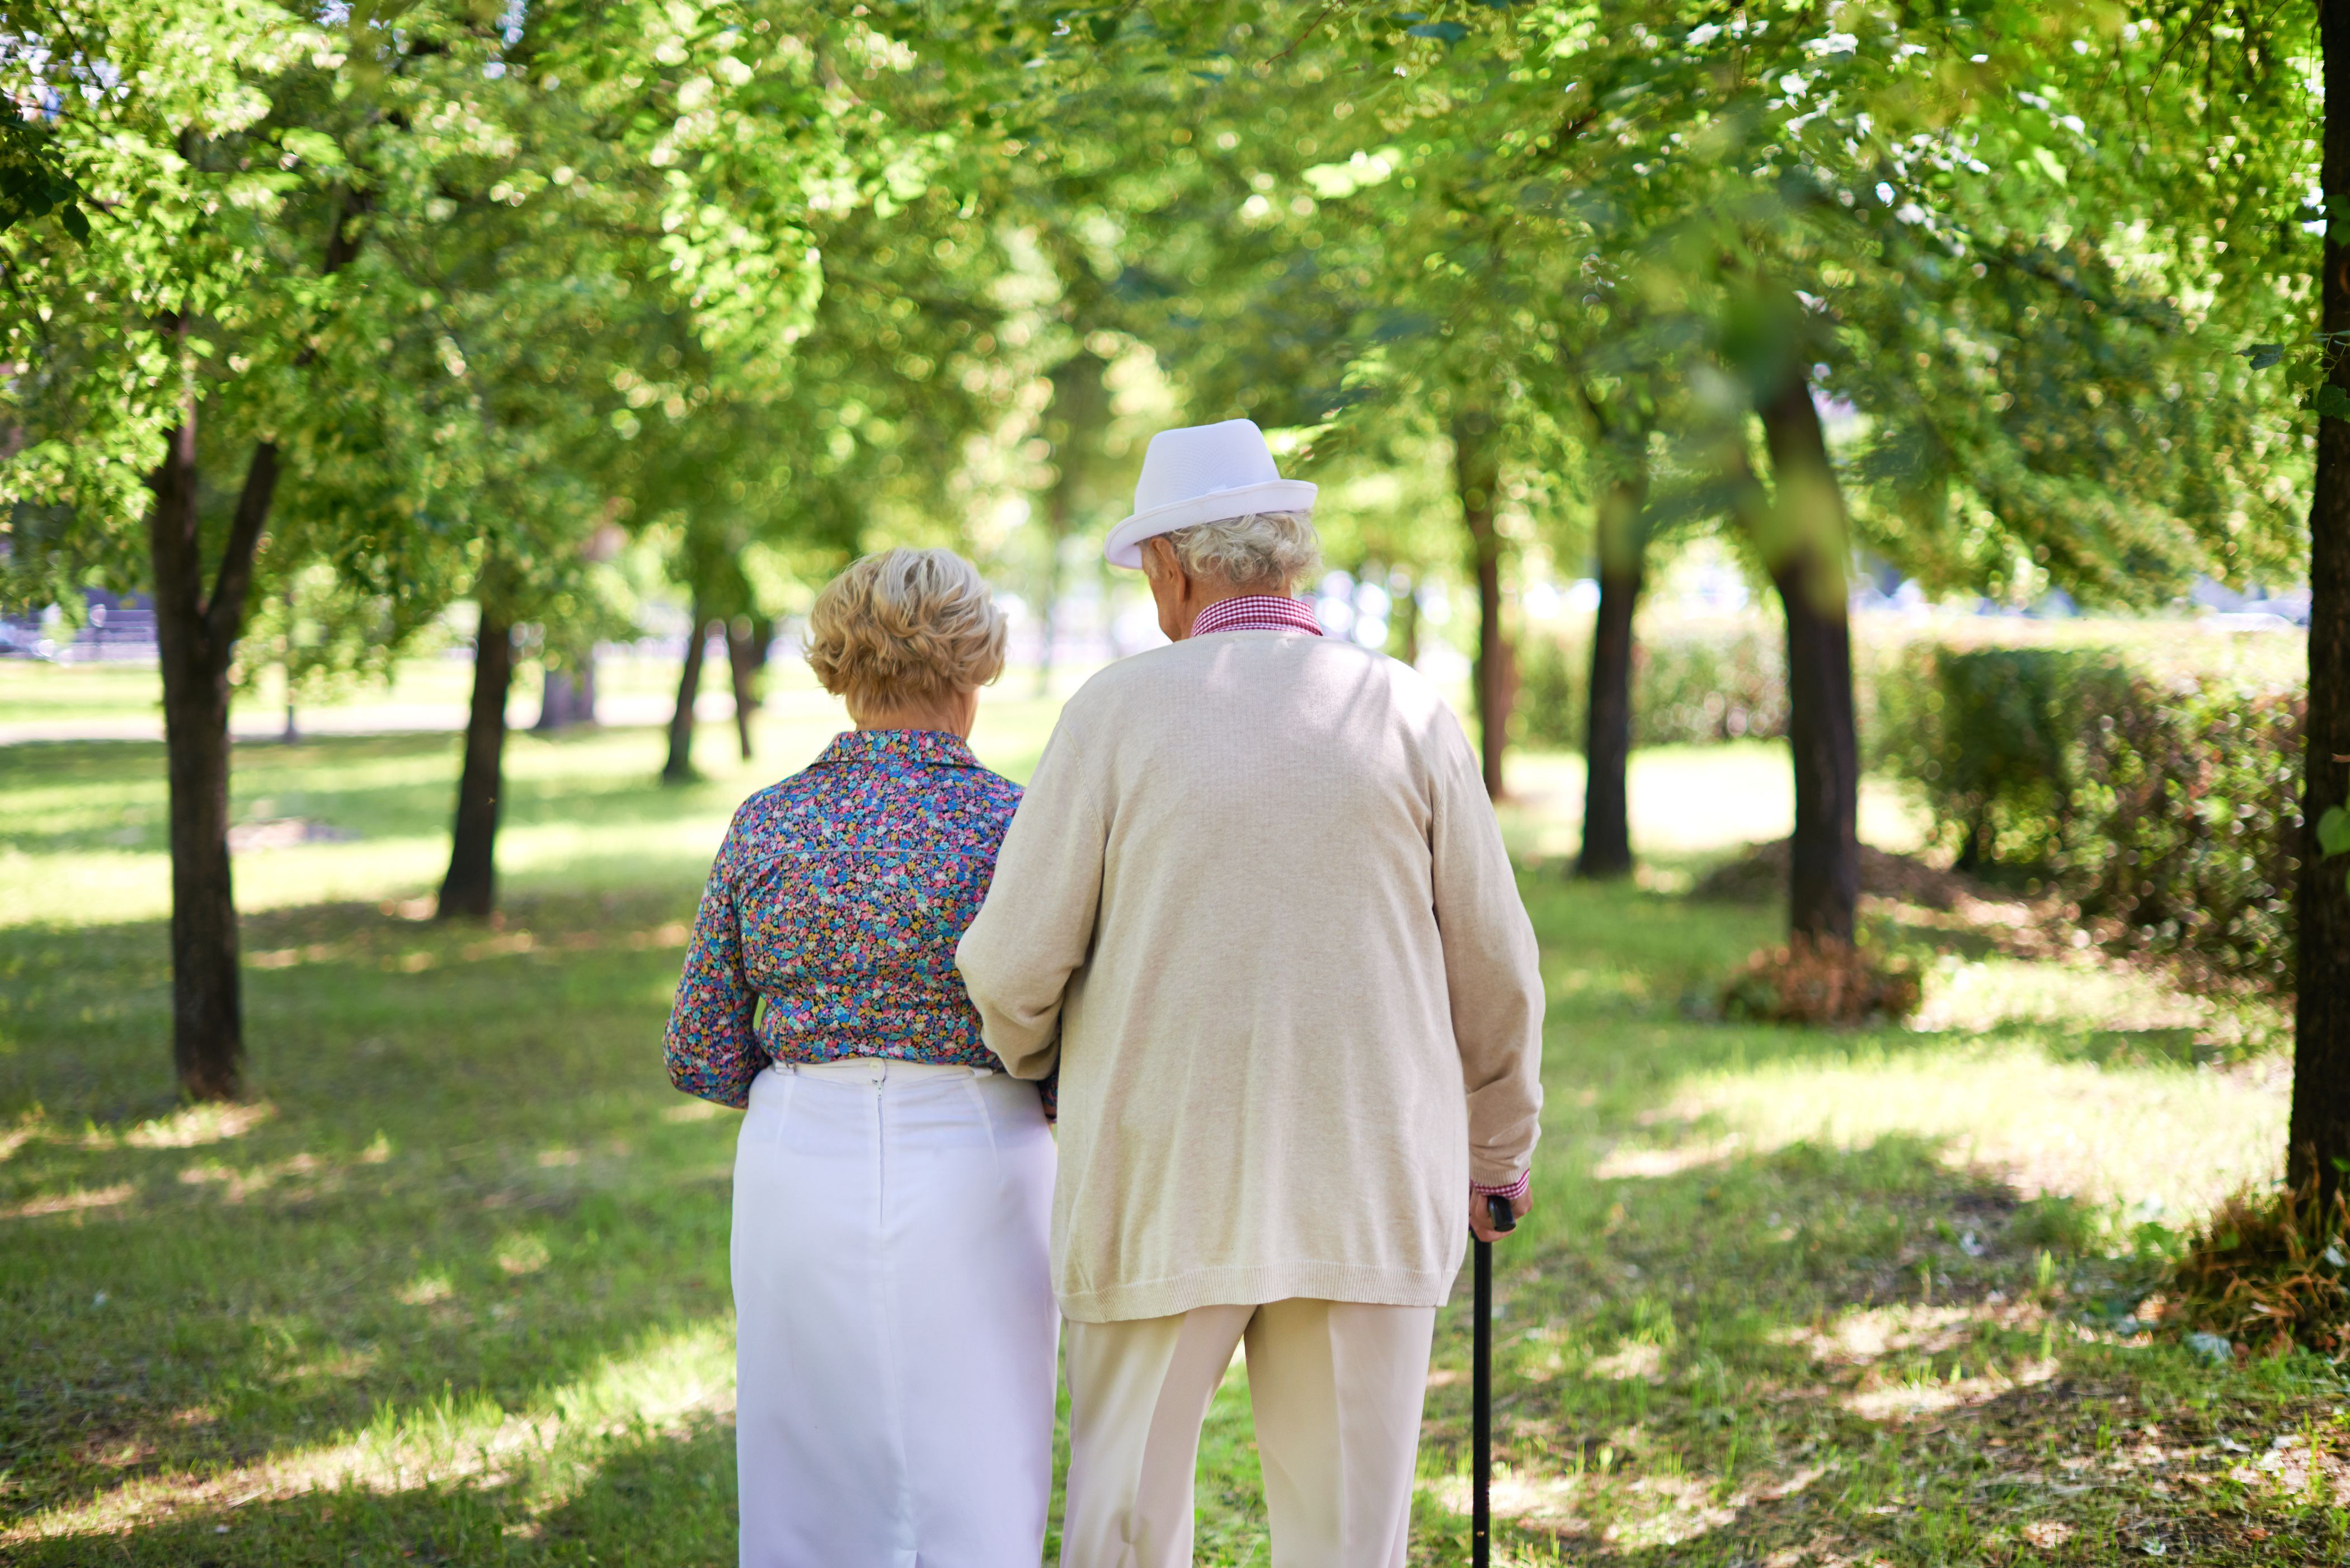 Aging in place facing demographic challenge the trend